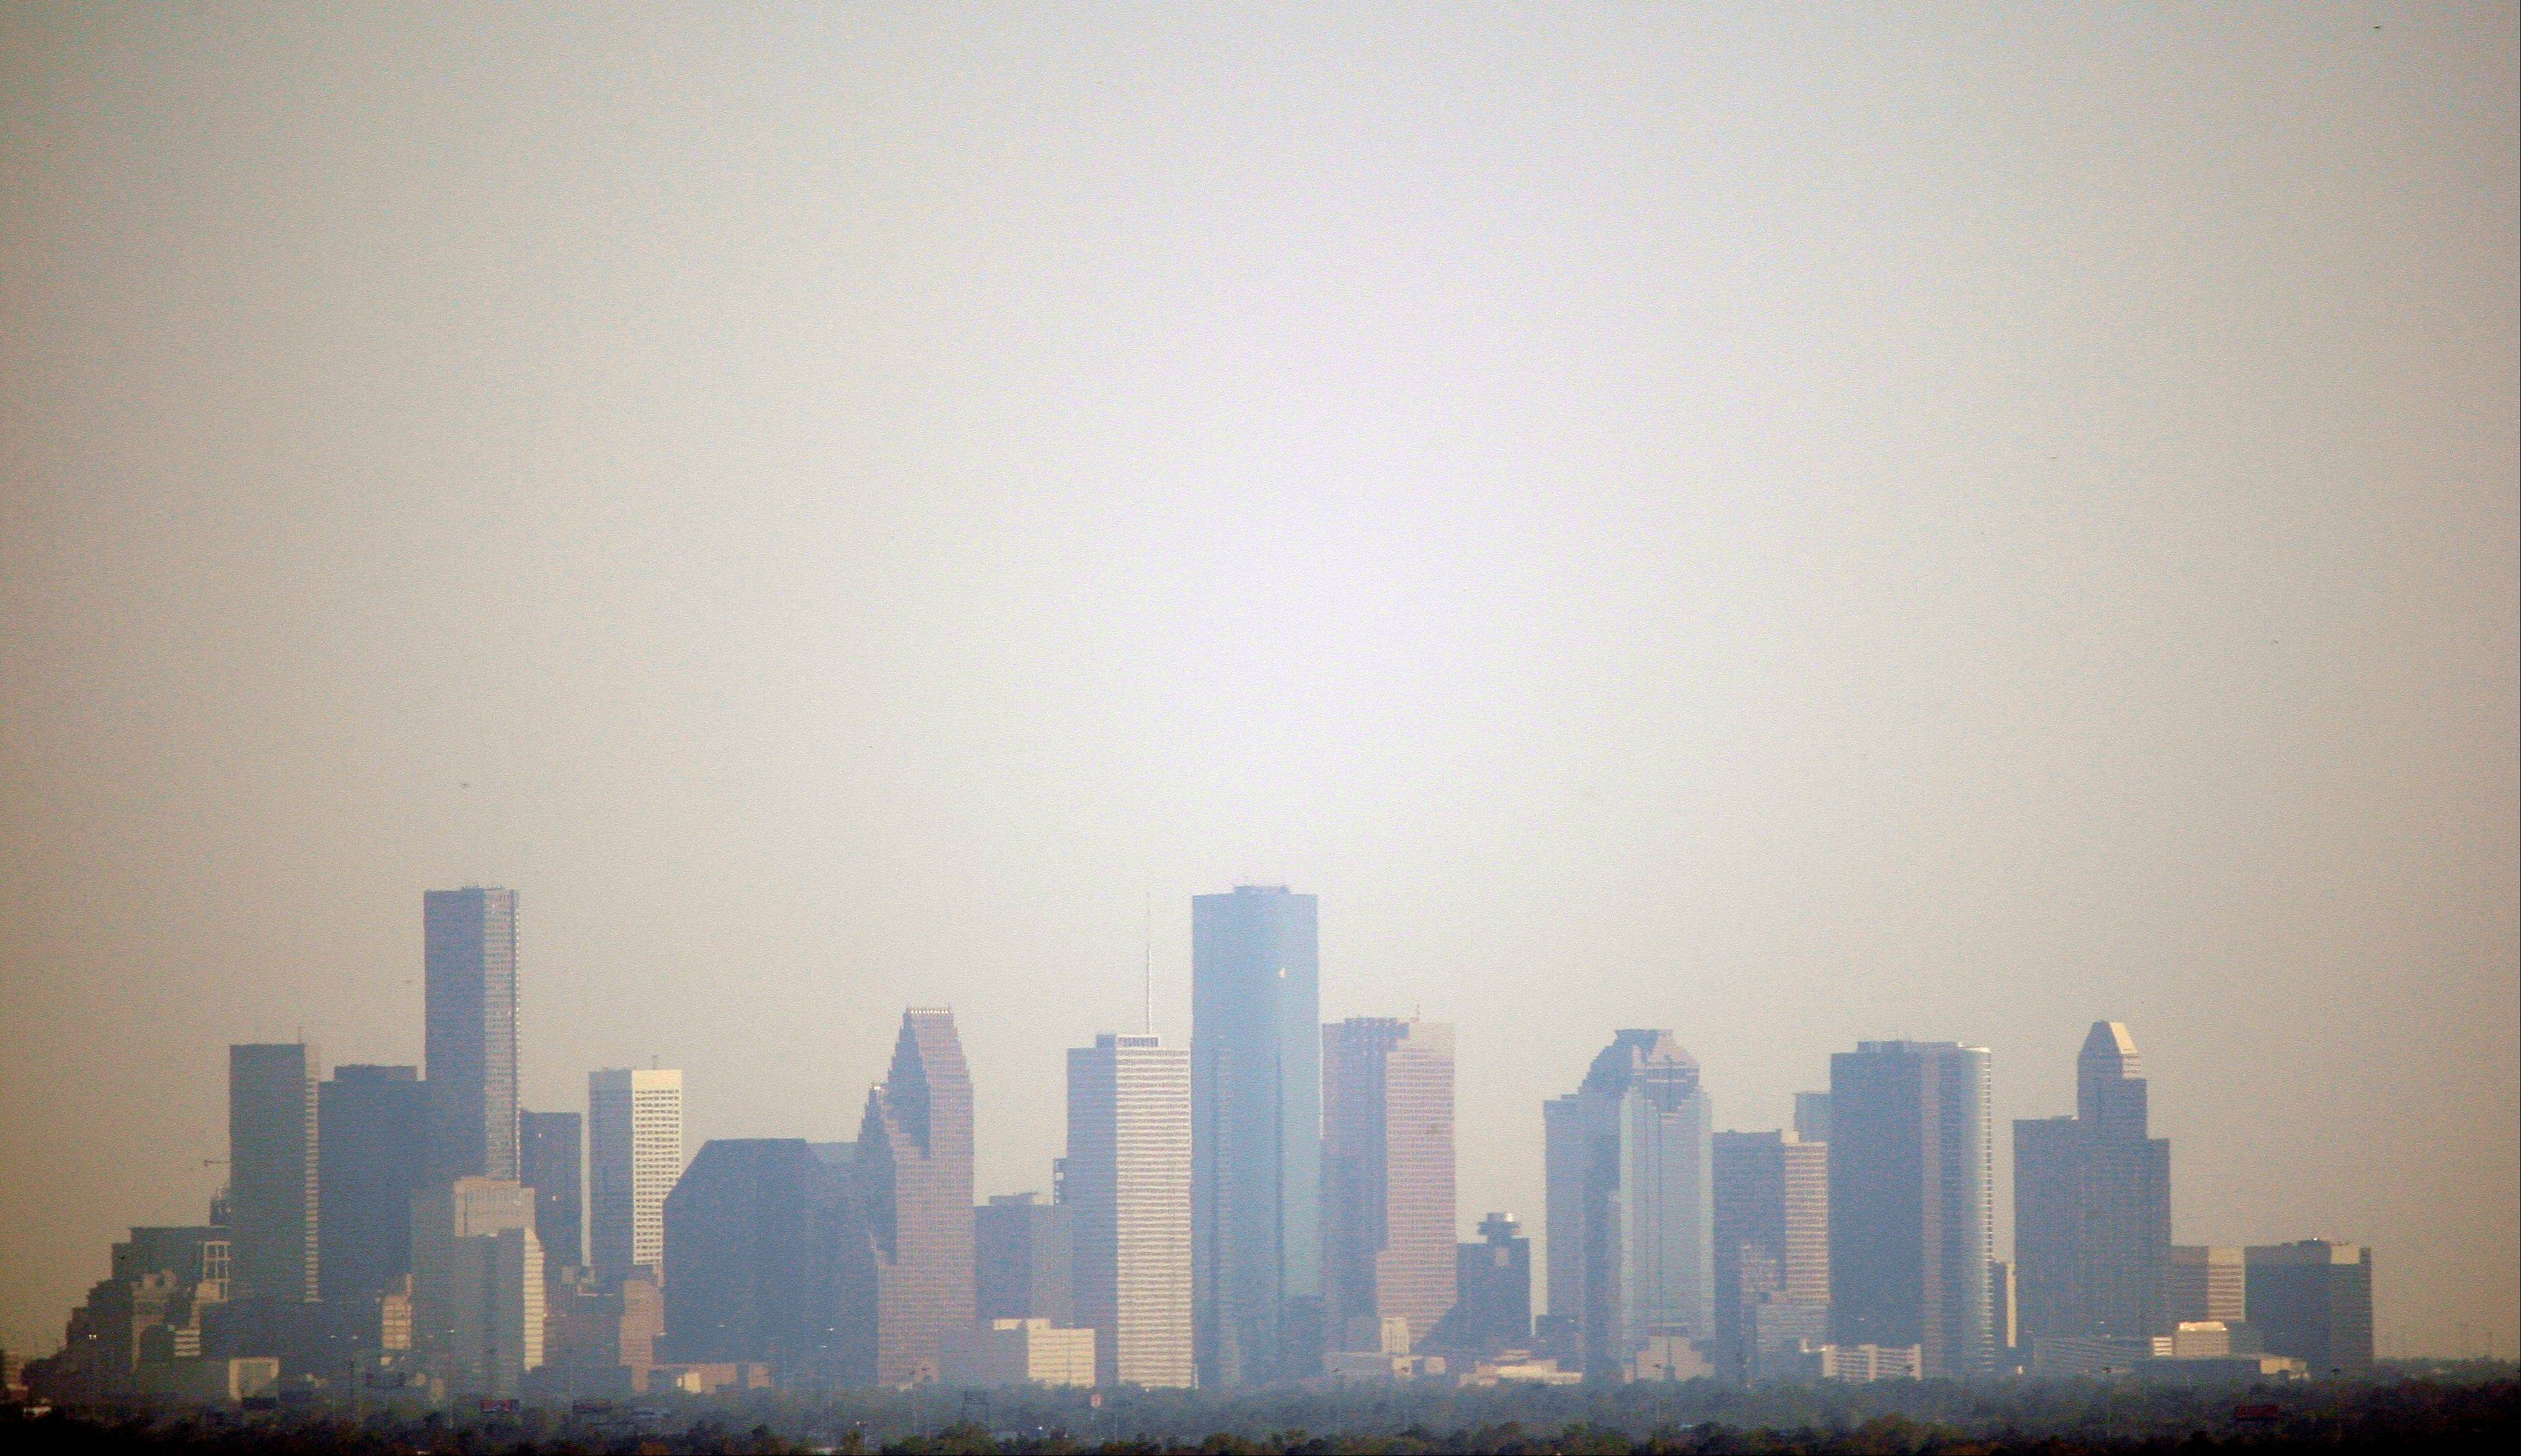 Houston residents now can have in their pocket the answer to whether ozone levels in the city are too high for their asthmatic child to play soccer. A new app available for iPhones and Android smartphones collects data from 74 air and wind monitors throughout the Houston area, giving residents nearly real-time data on smog.